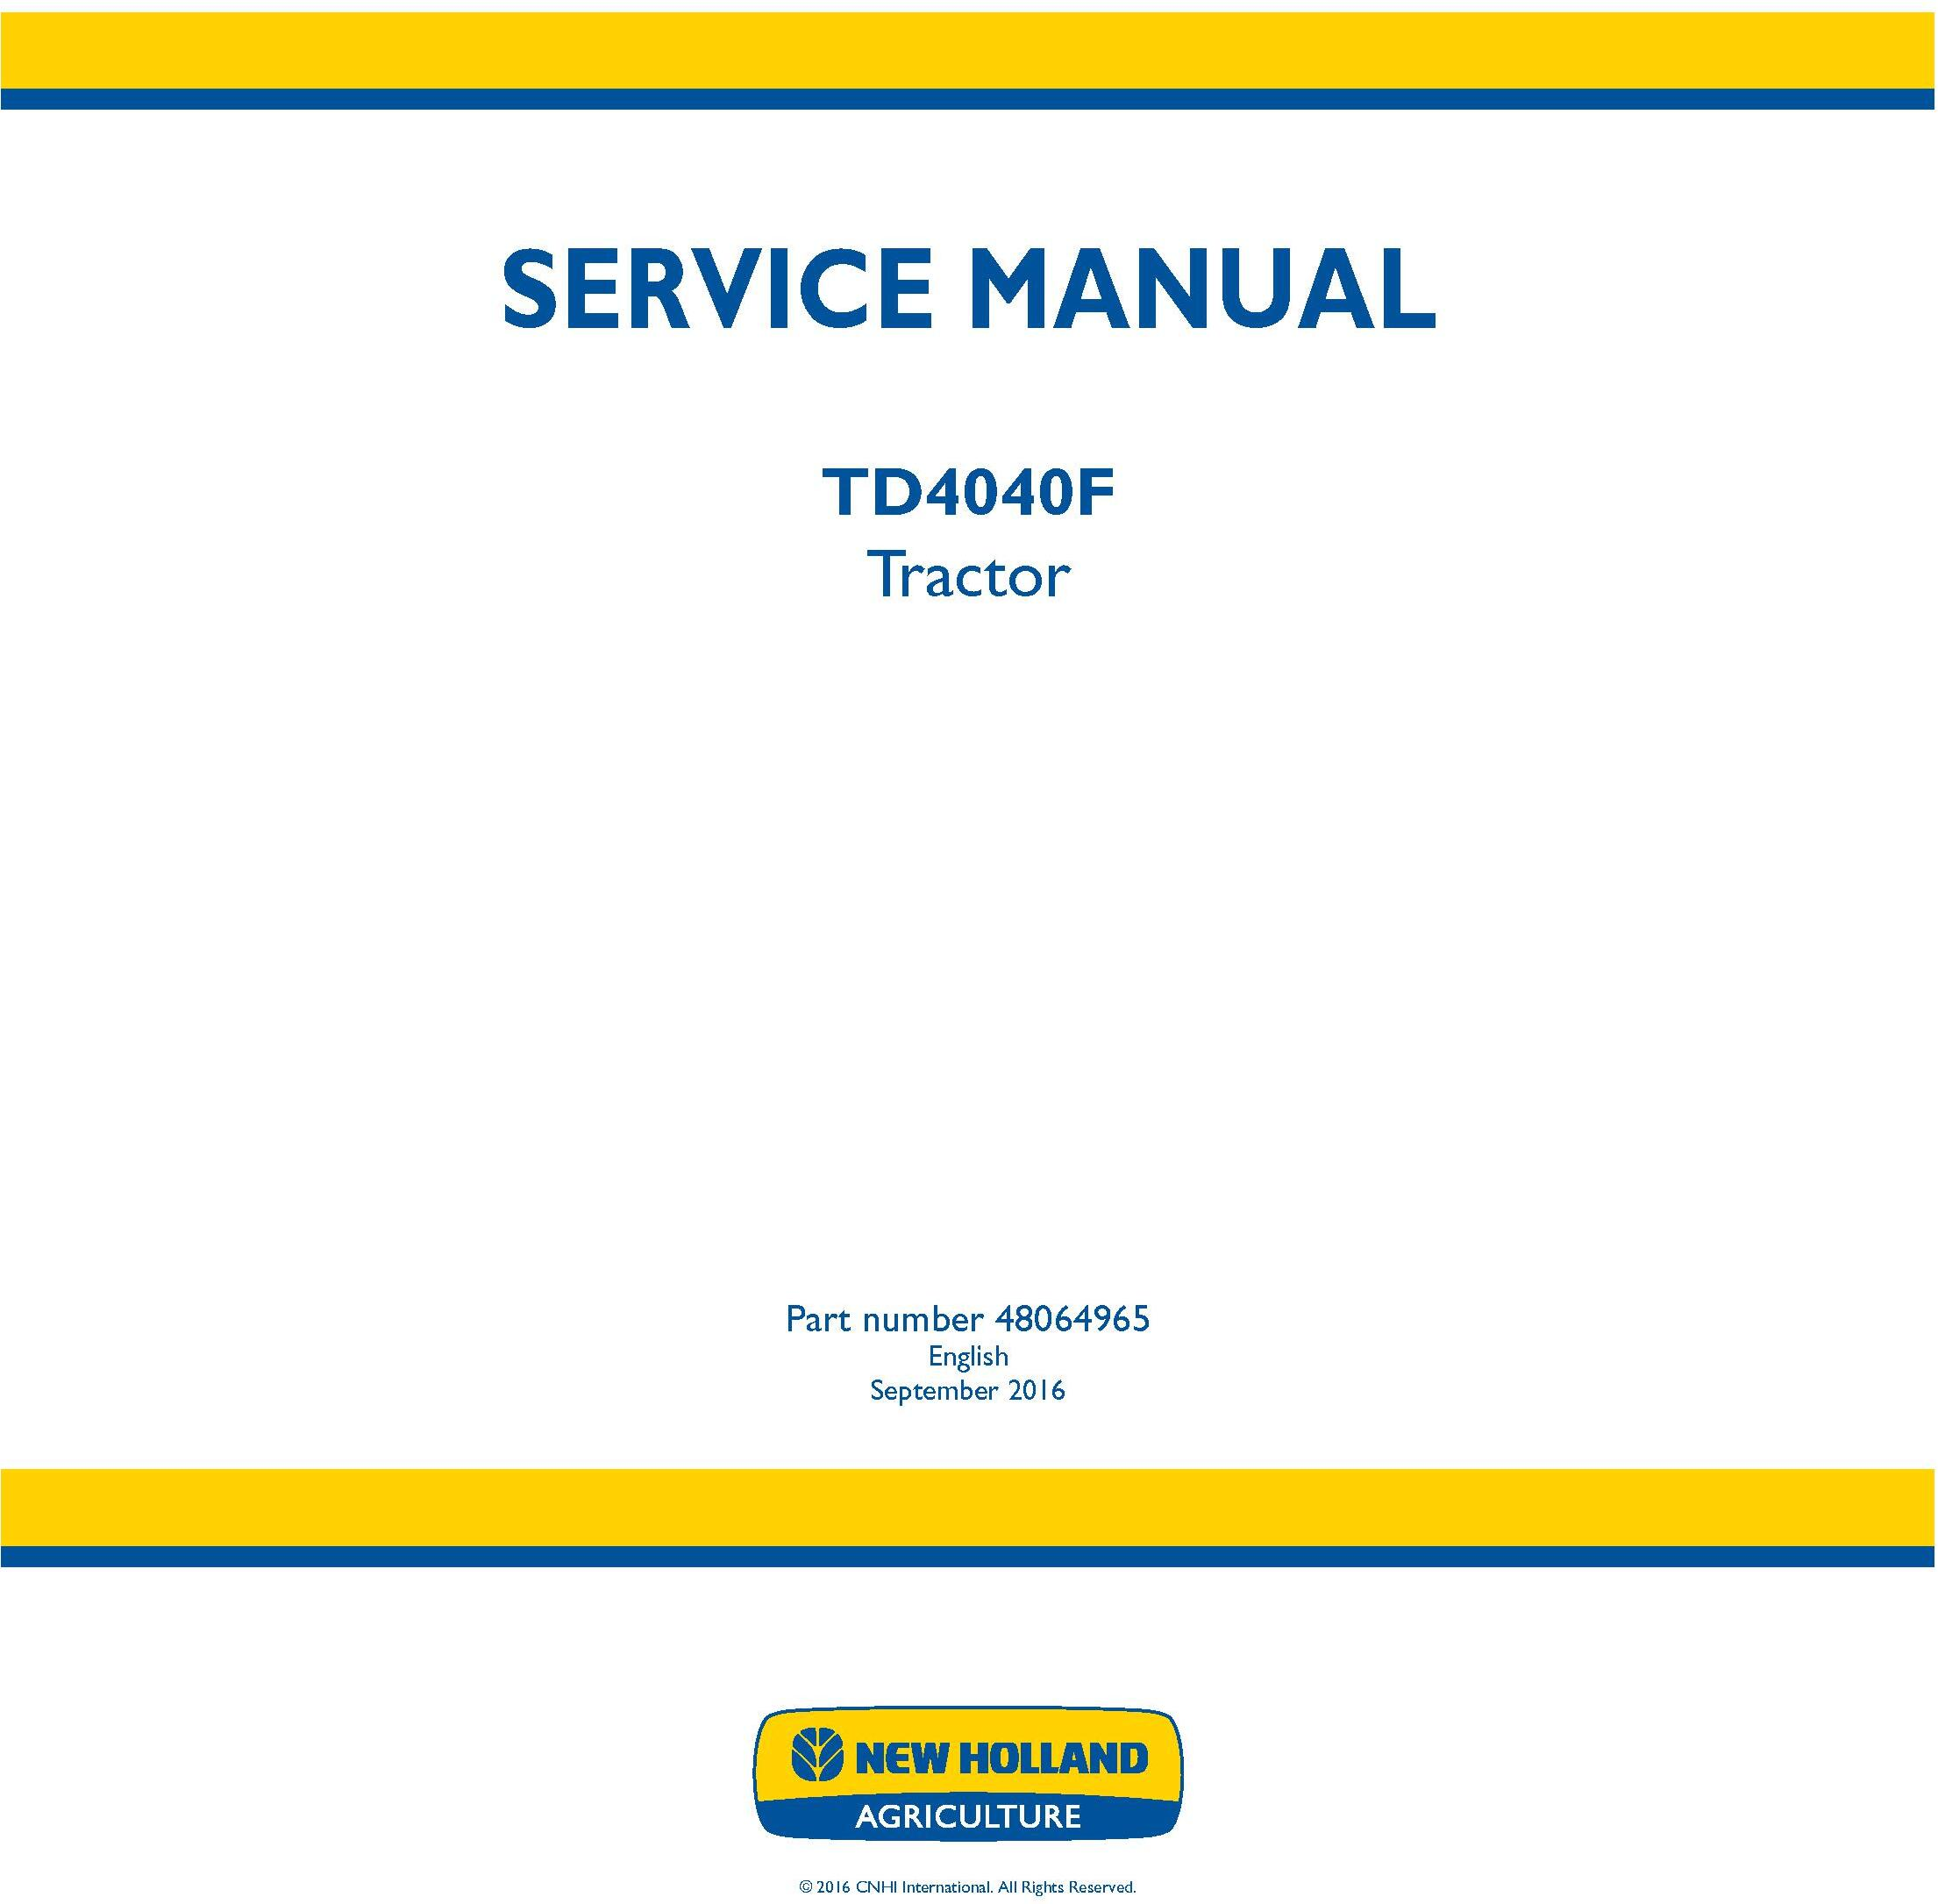 New Holland TD4040F Tractor Service Manual (North America) - 19490